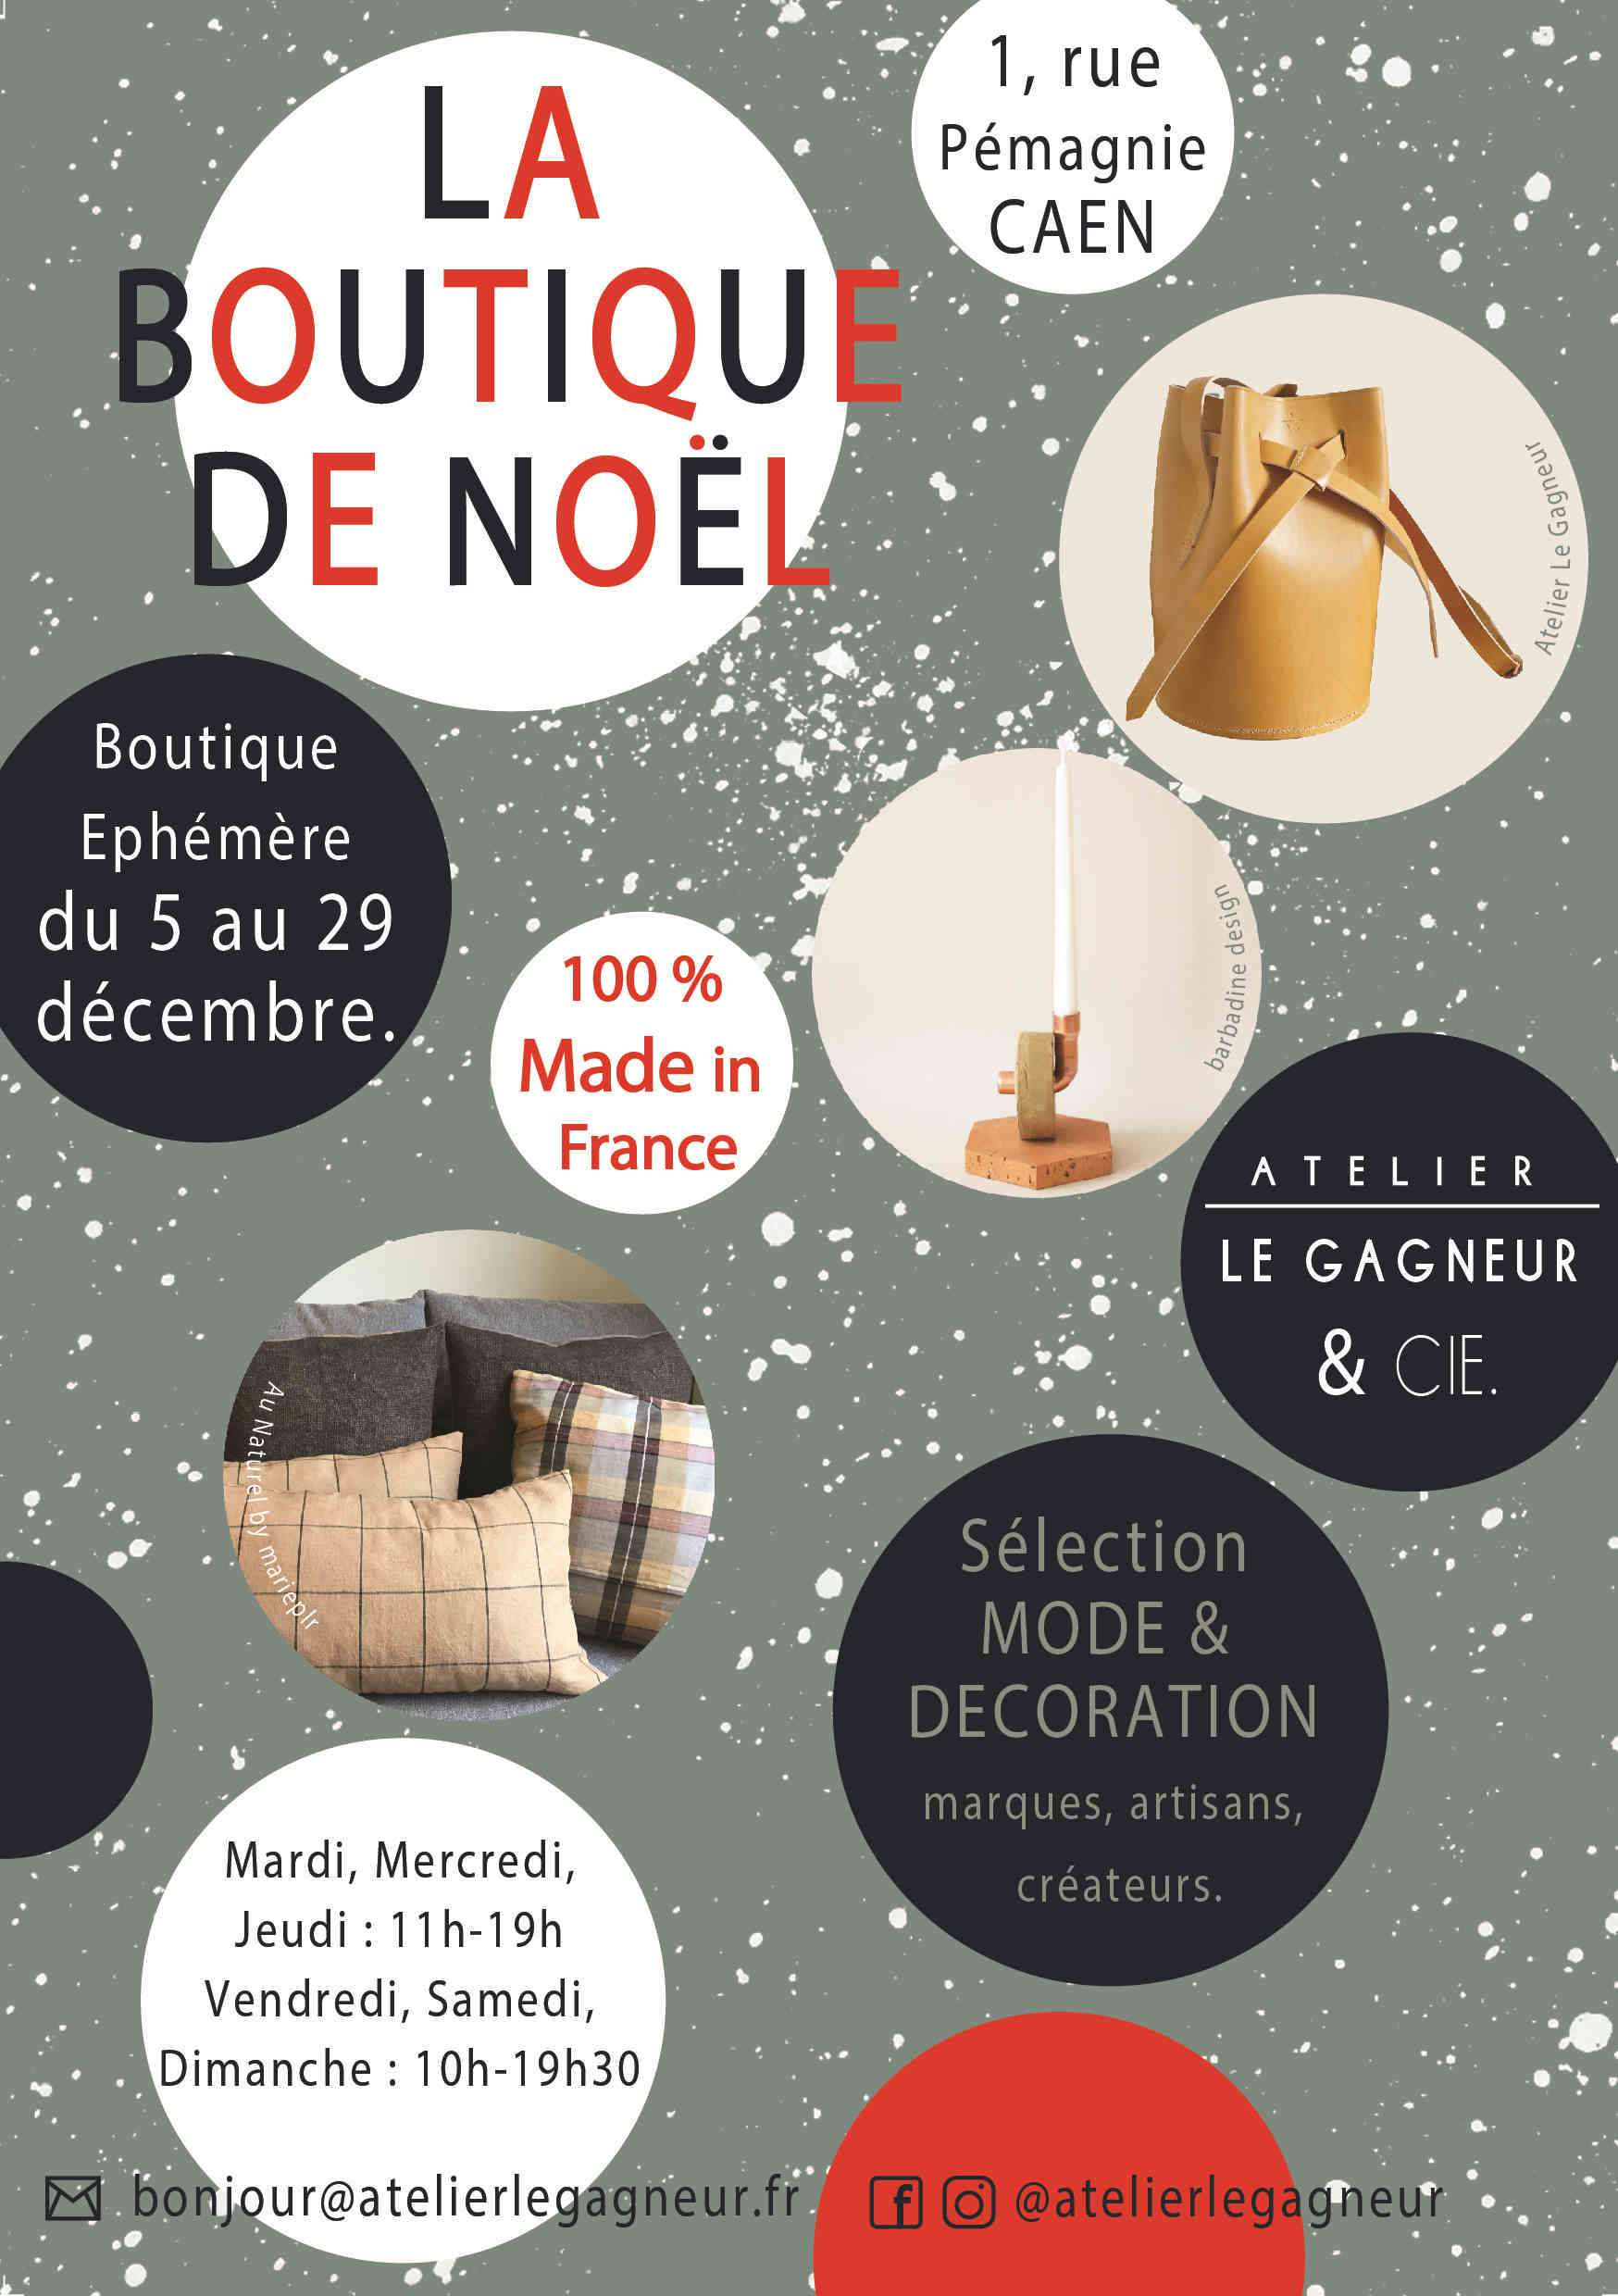 Destockage Caen Event Caen La Boutique De Noël Made In France à Caen Sloweare